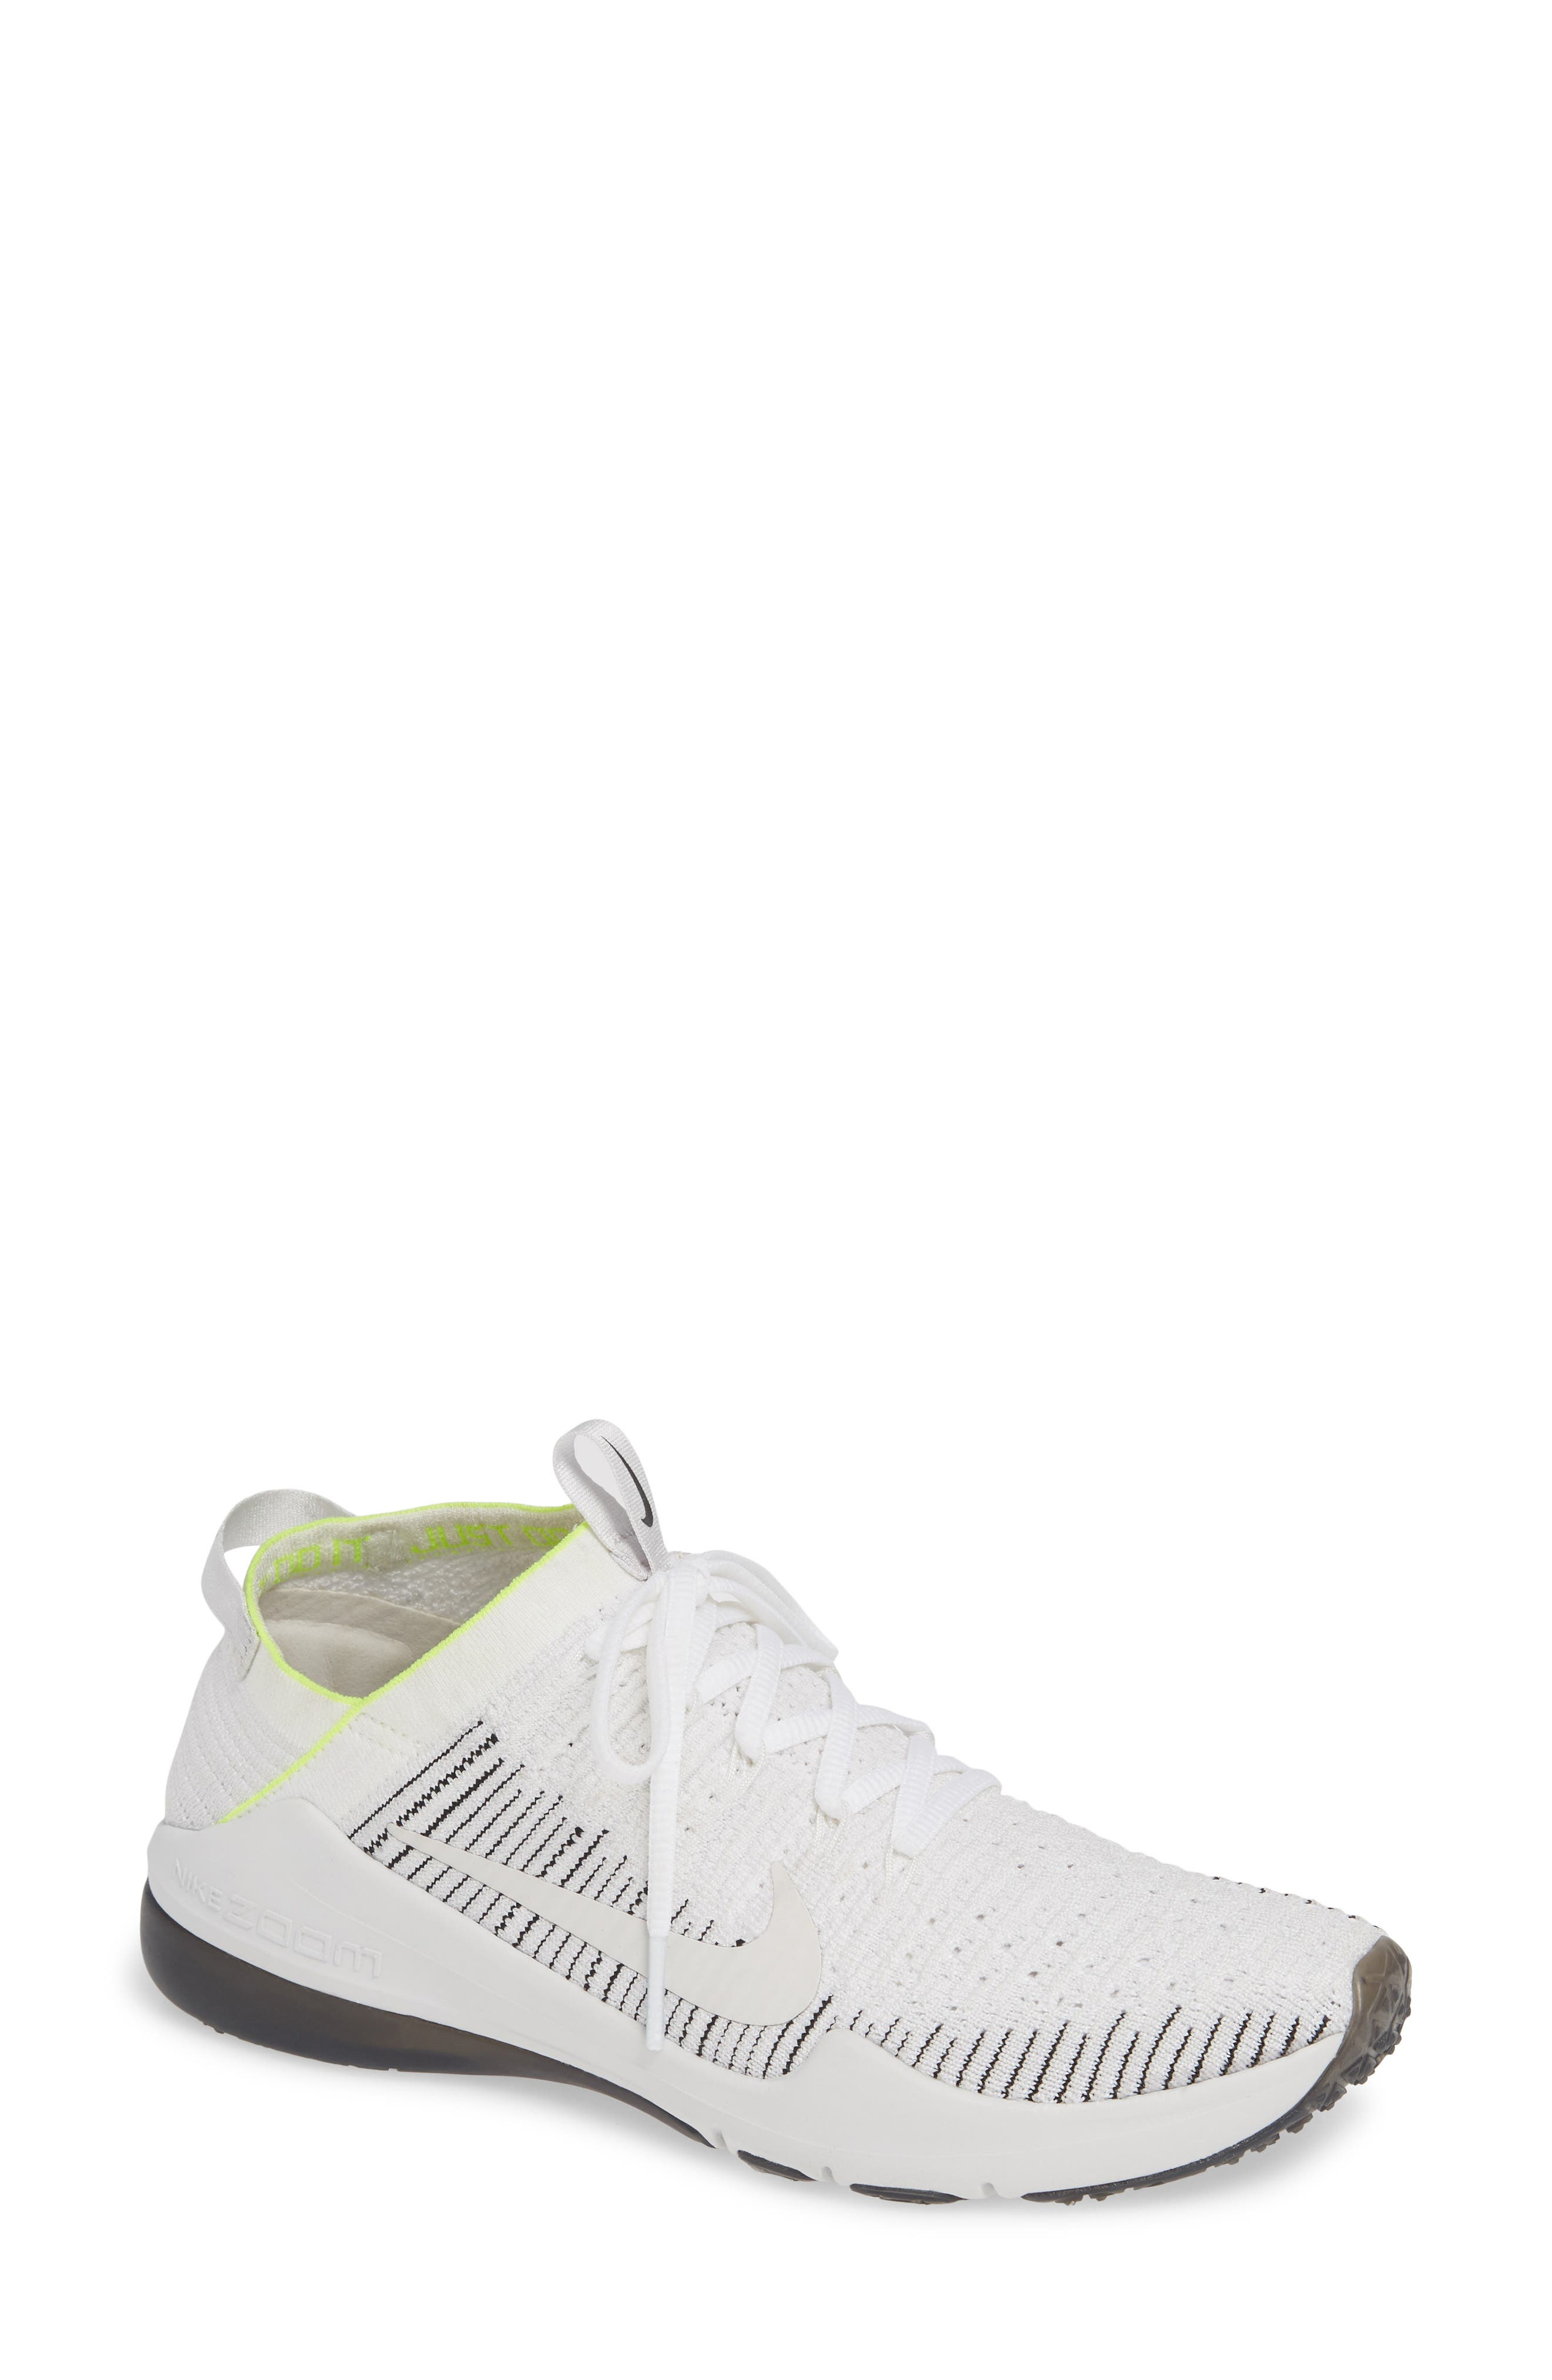 Air Zoom Fearless Flyknit 2 Training Sneaker in White/ Platinum Tint/ Black